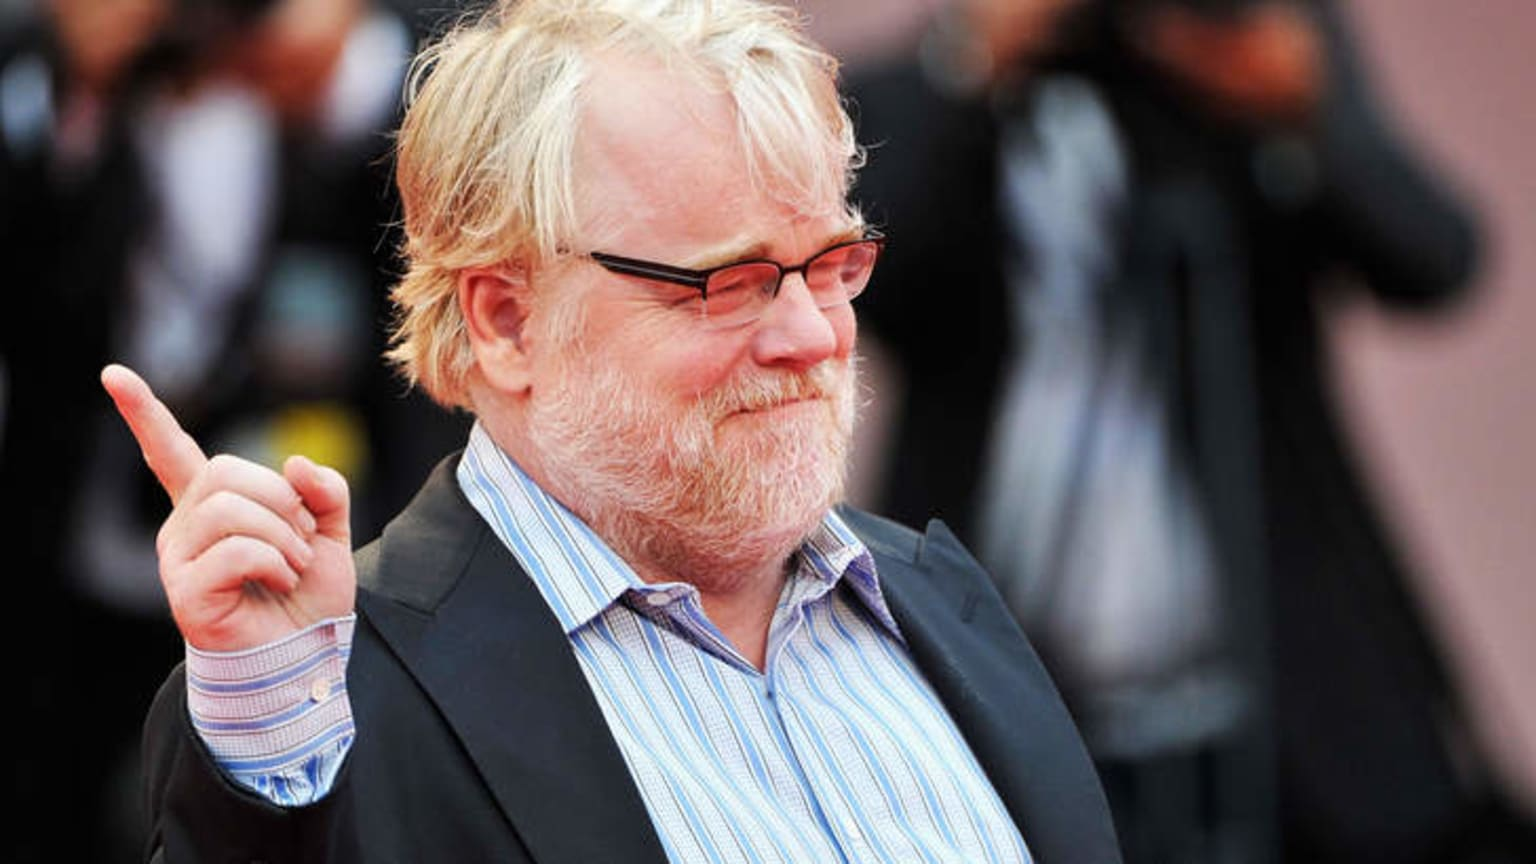 Philip Seymour Hoffman leads the cast of this crime drama that also stars Christina Hendricks and Richard Jenkins